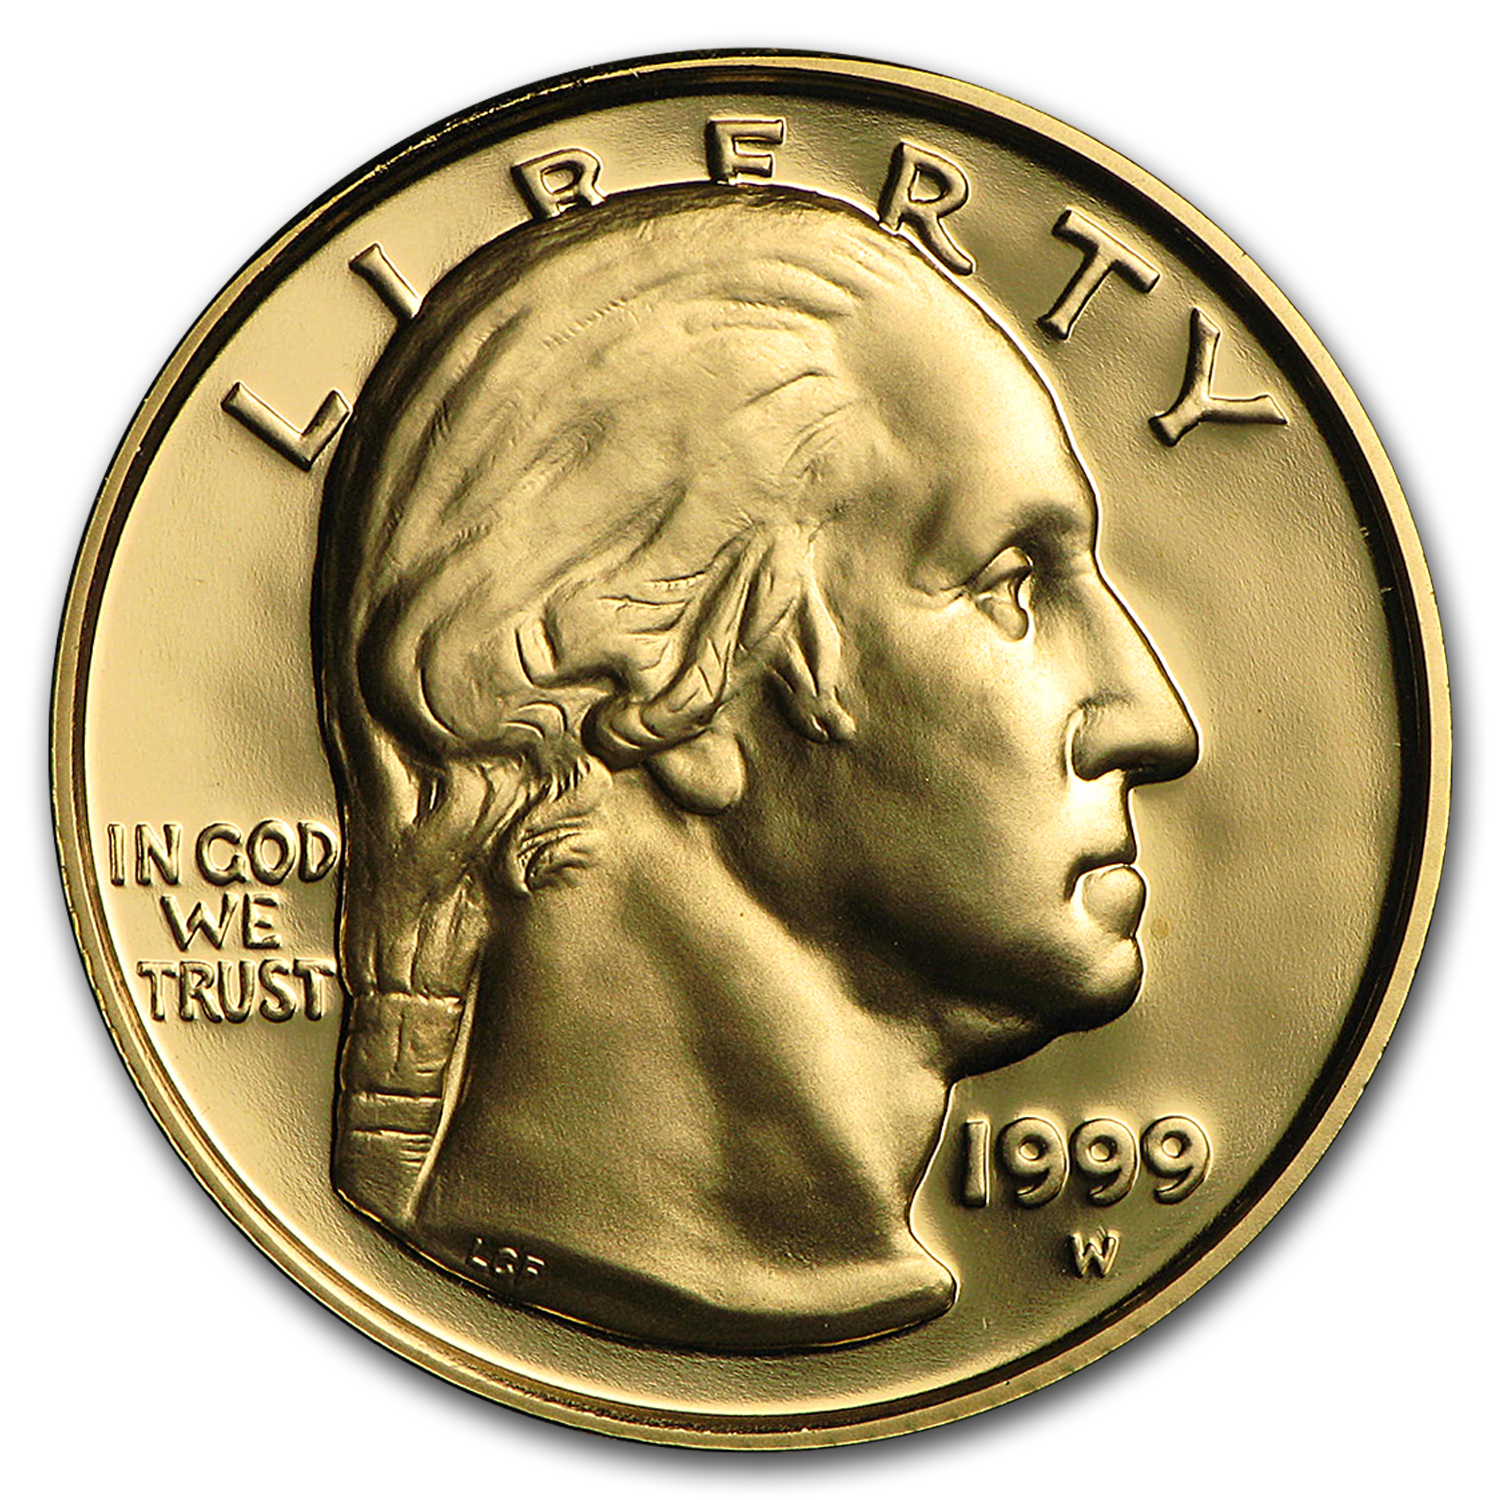 1999-W Gold $5 Commem George Washington Proof (w/Box & COA)